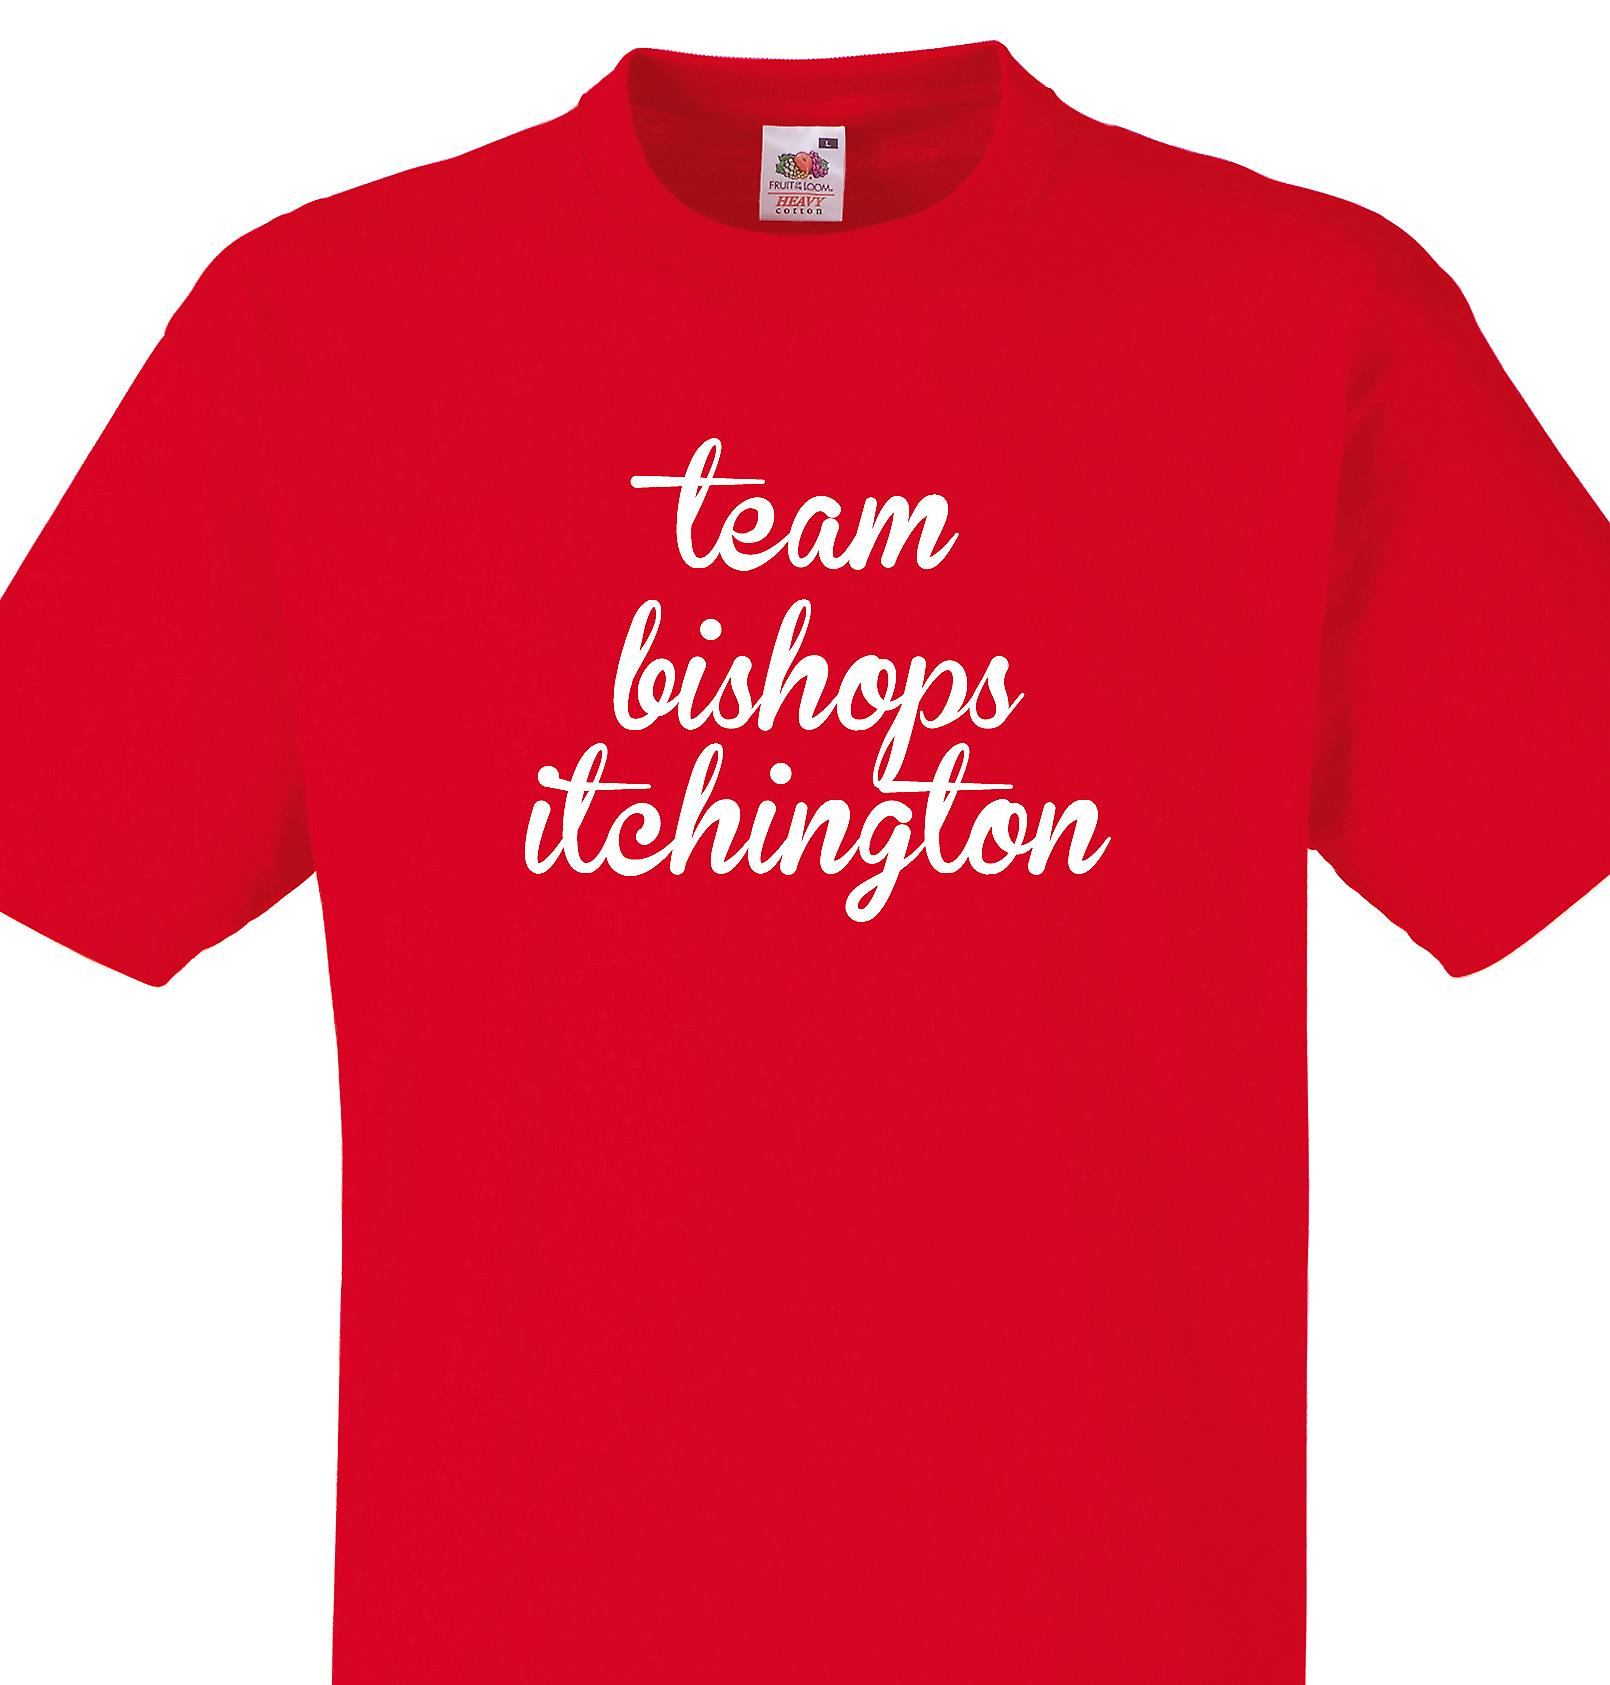 Team Bishops itchington Red T shirt